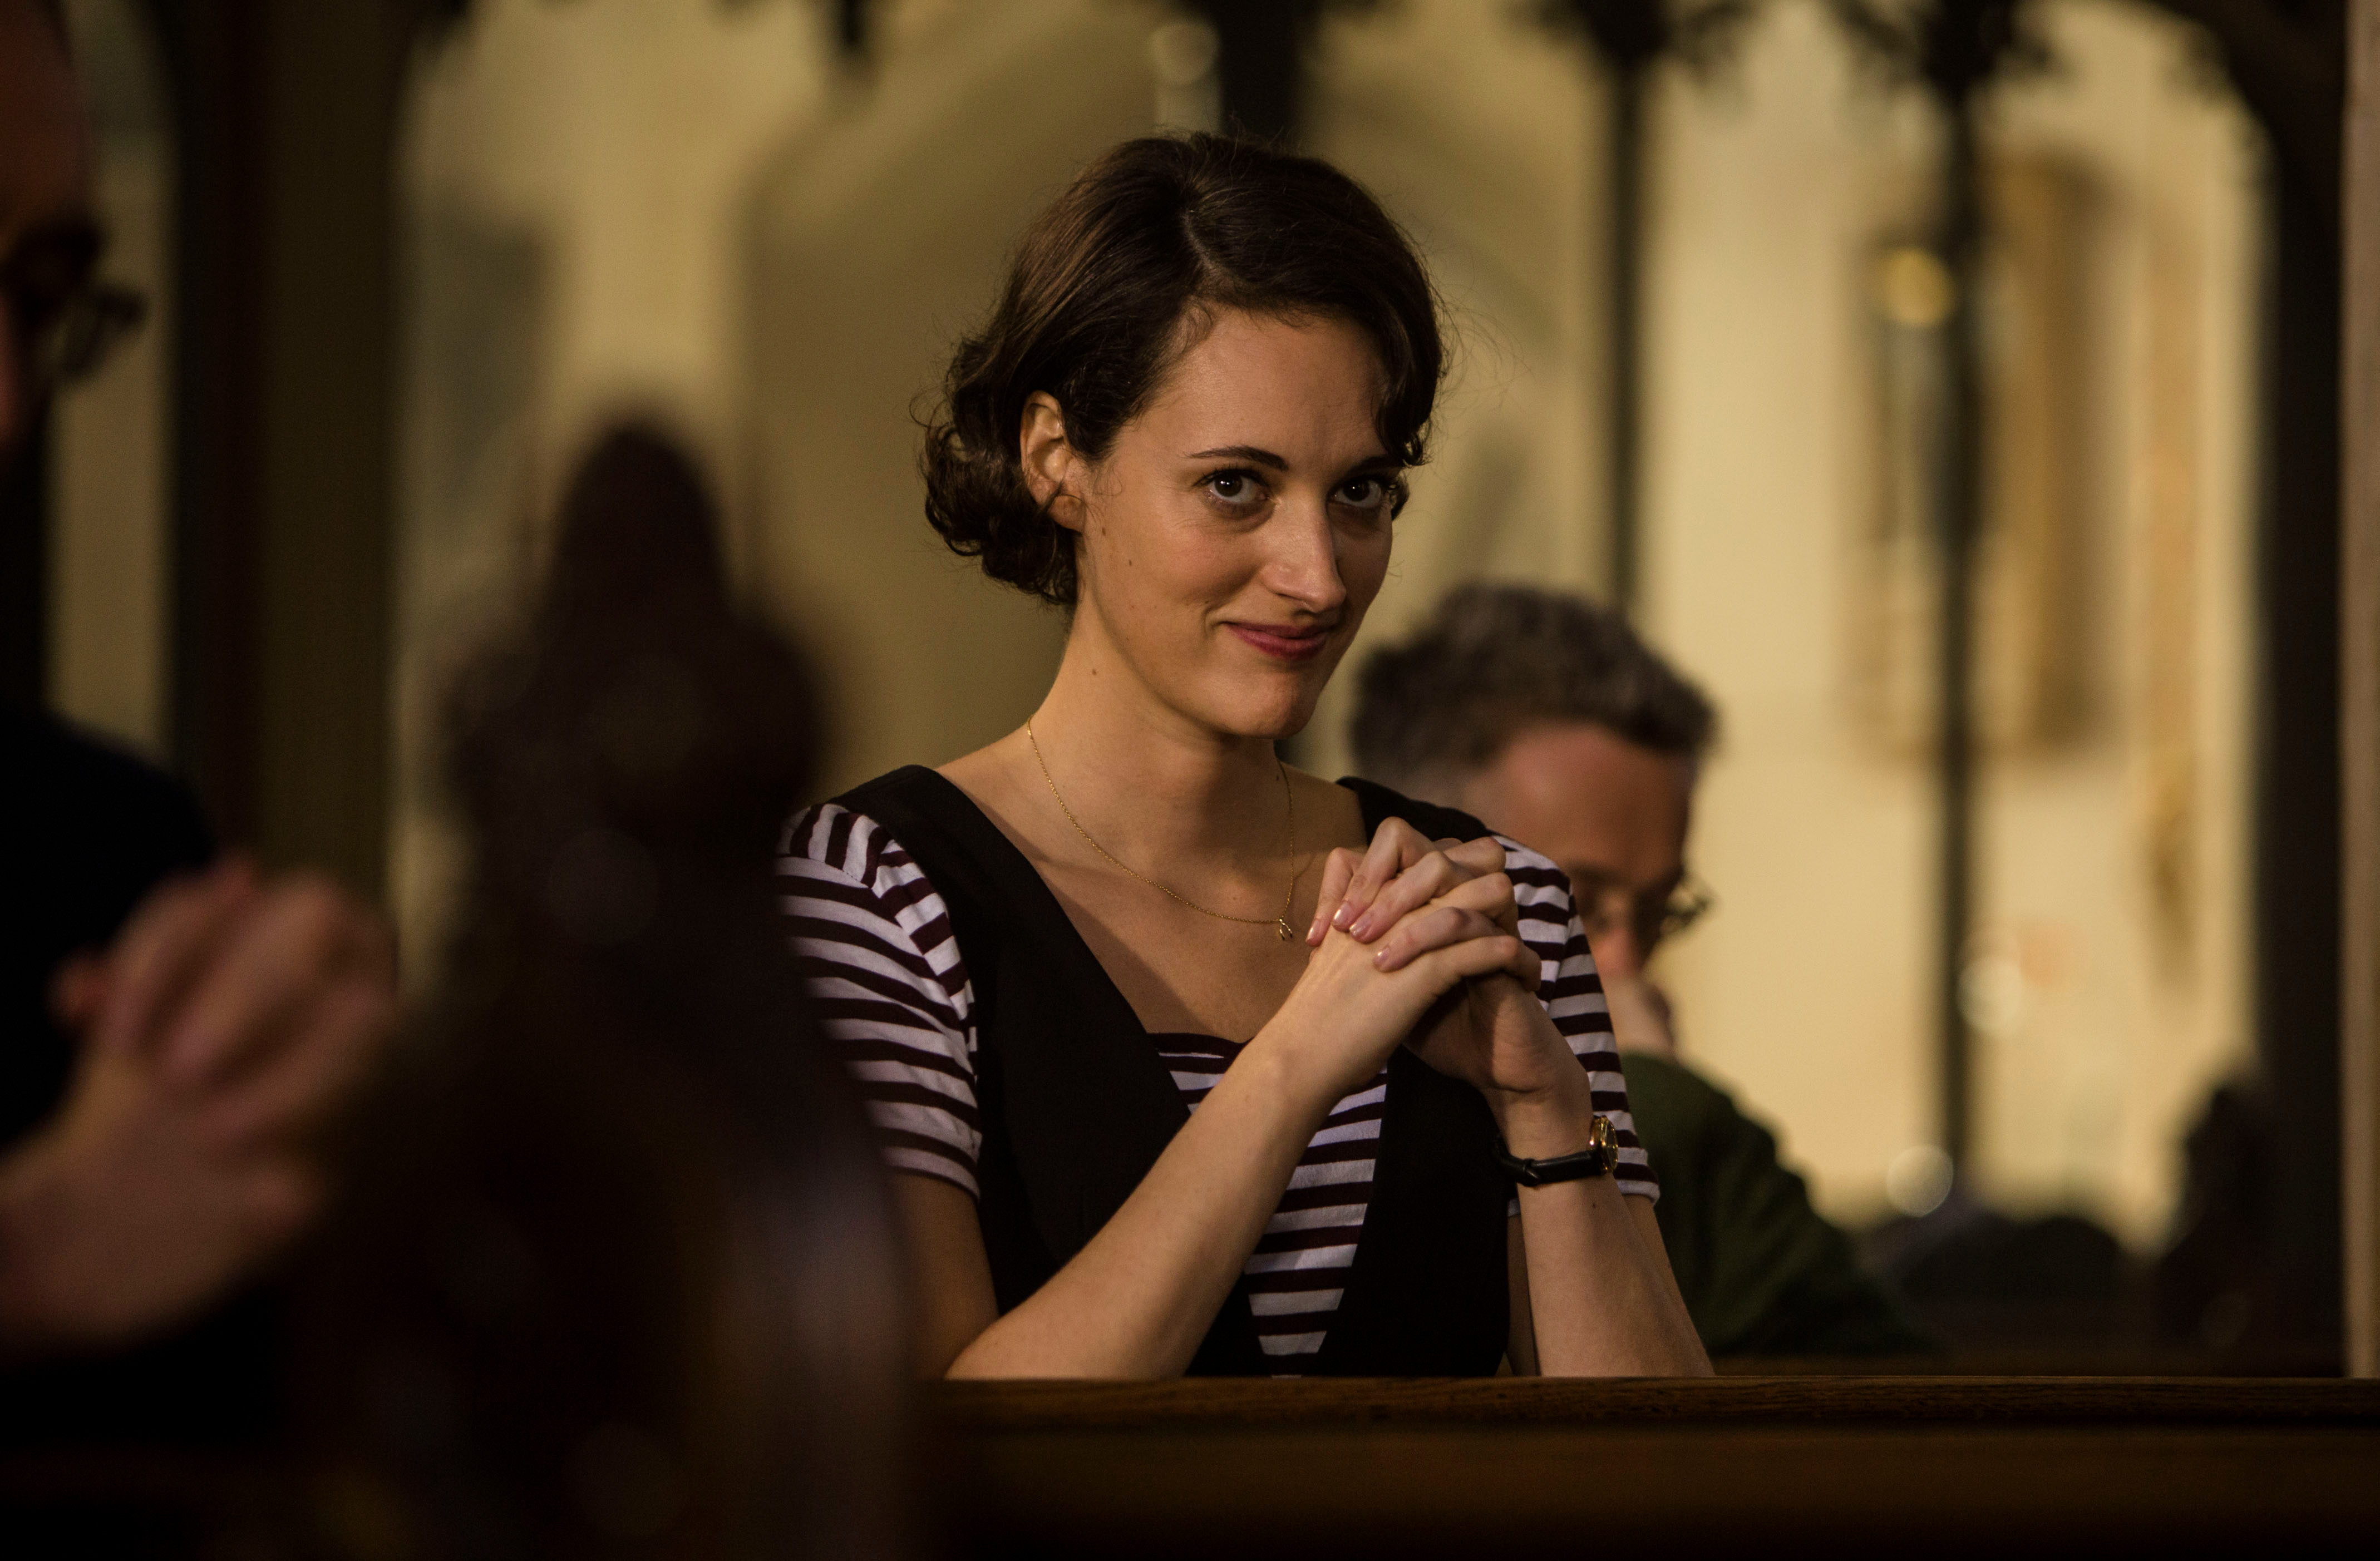 Phoebe Waller-Bridge's Fleabag became an overnight sensation